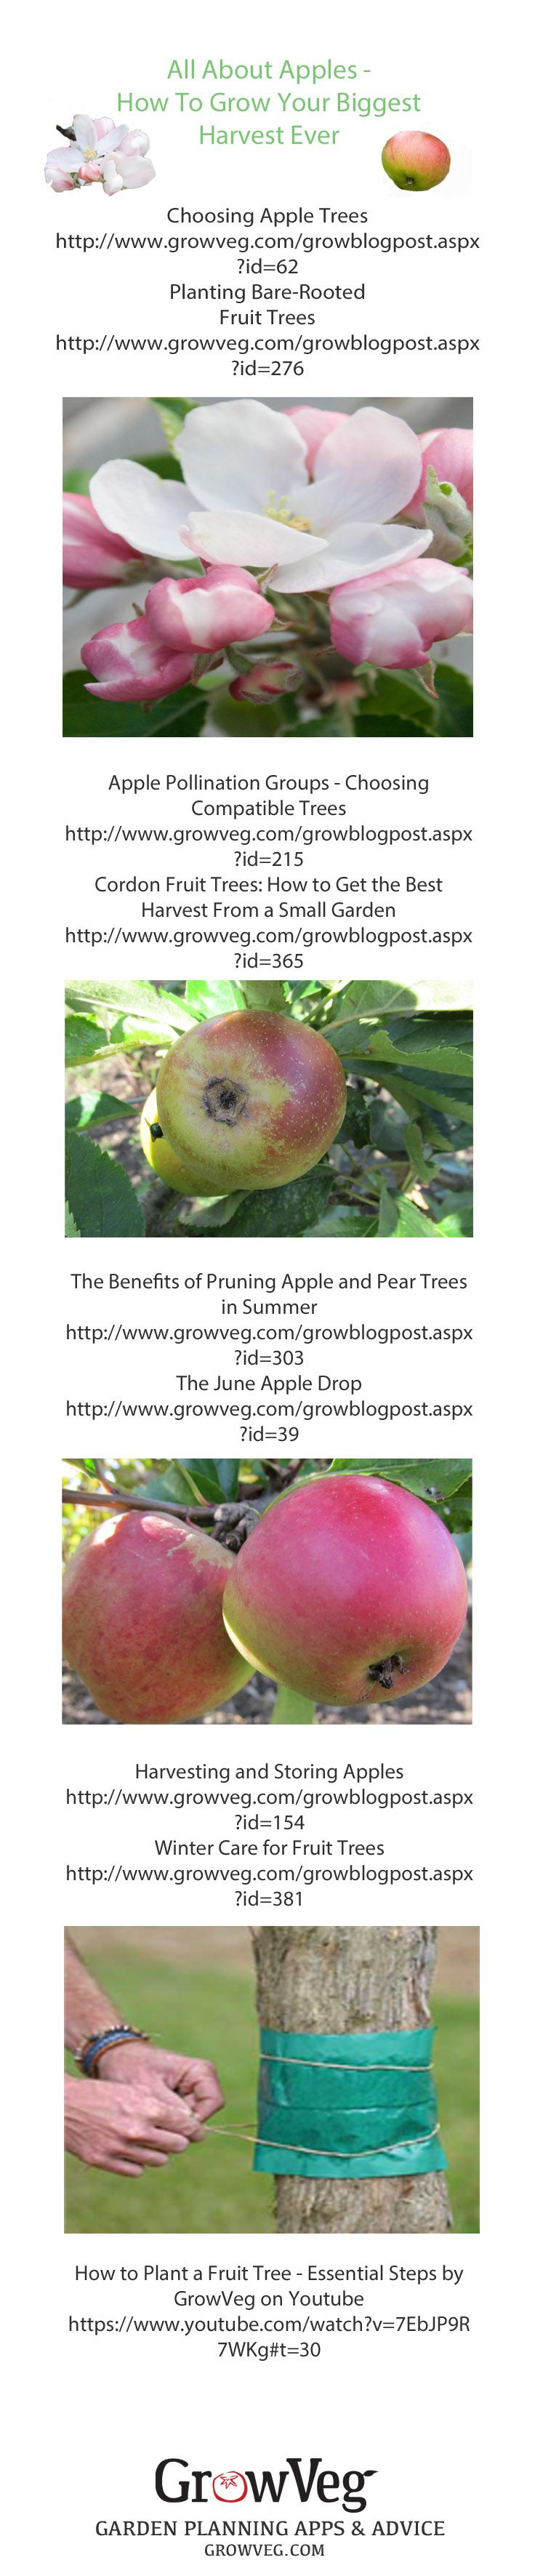 Everything that you need to know about planting, growing and caring for your apple trees. How to store the apples and how to prune them, how to make sure that you get the best harvest out of the smallest space from the Garden Planner at growveg.com